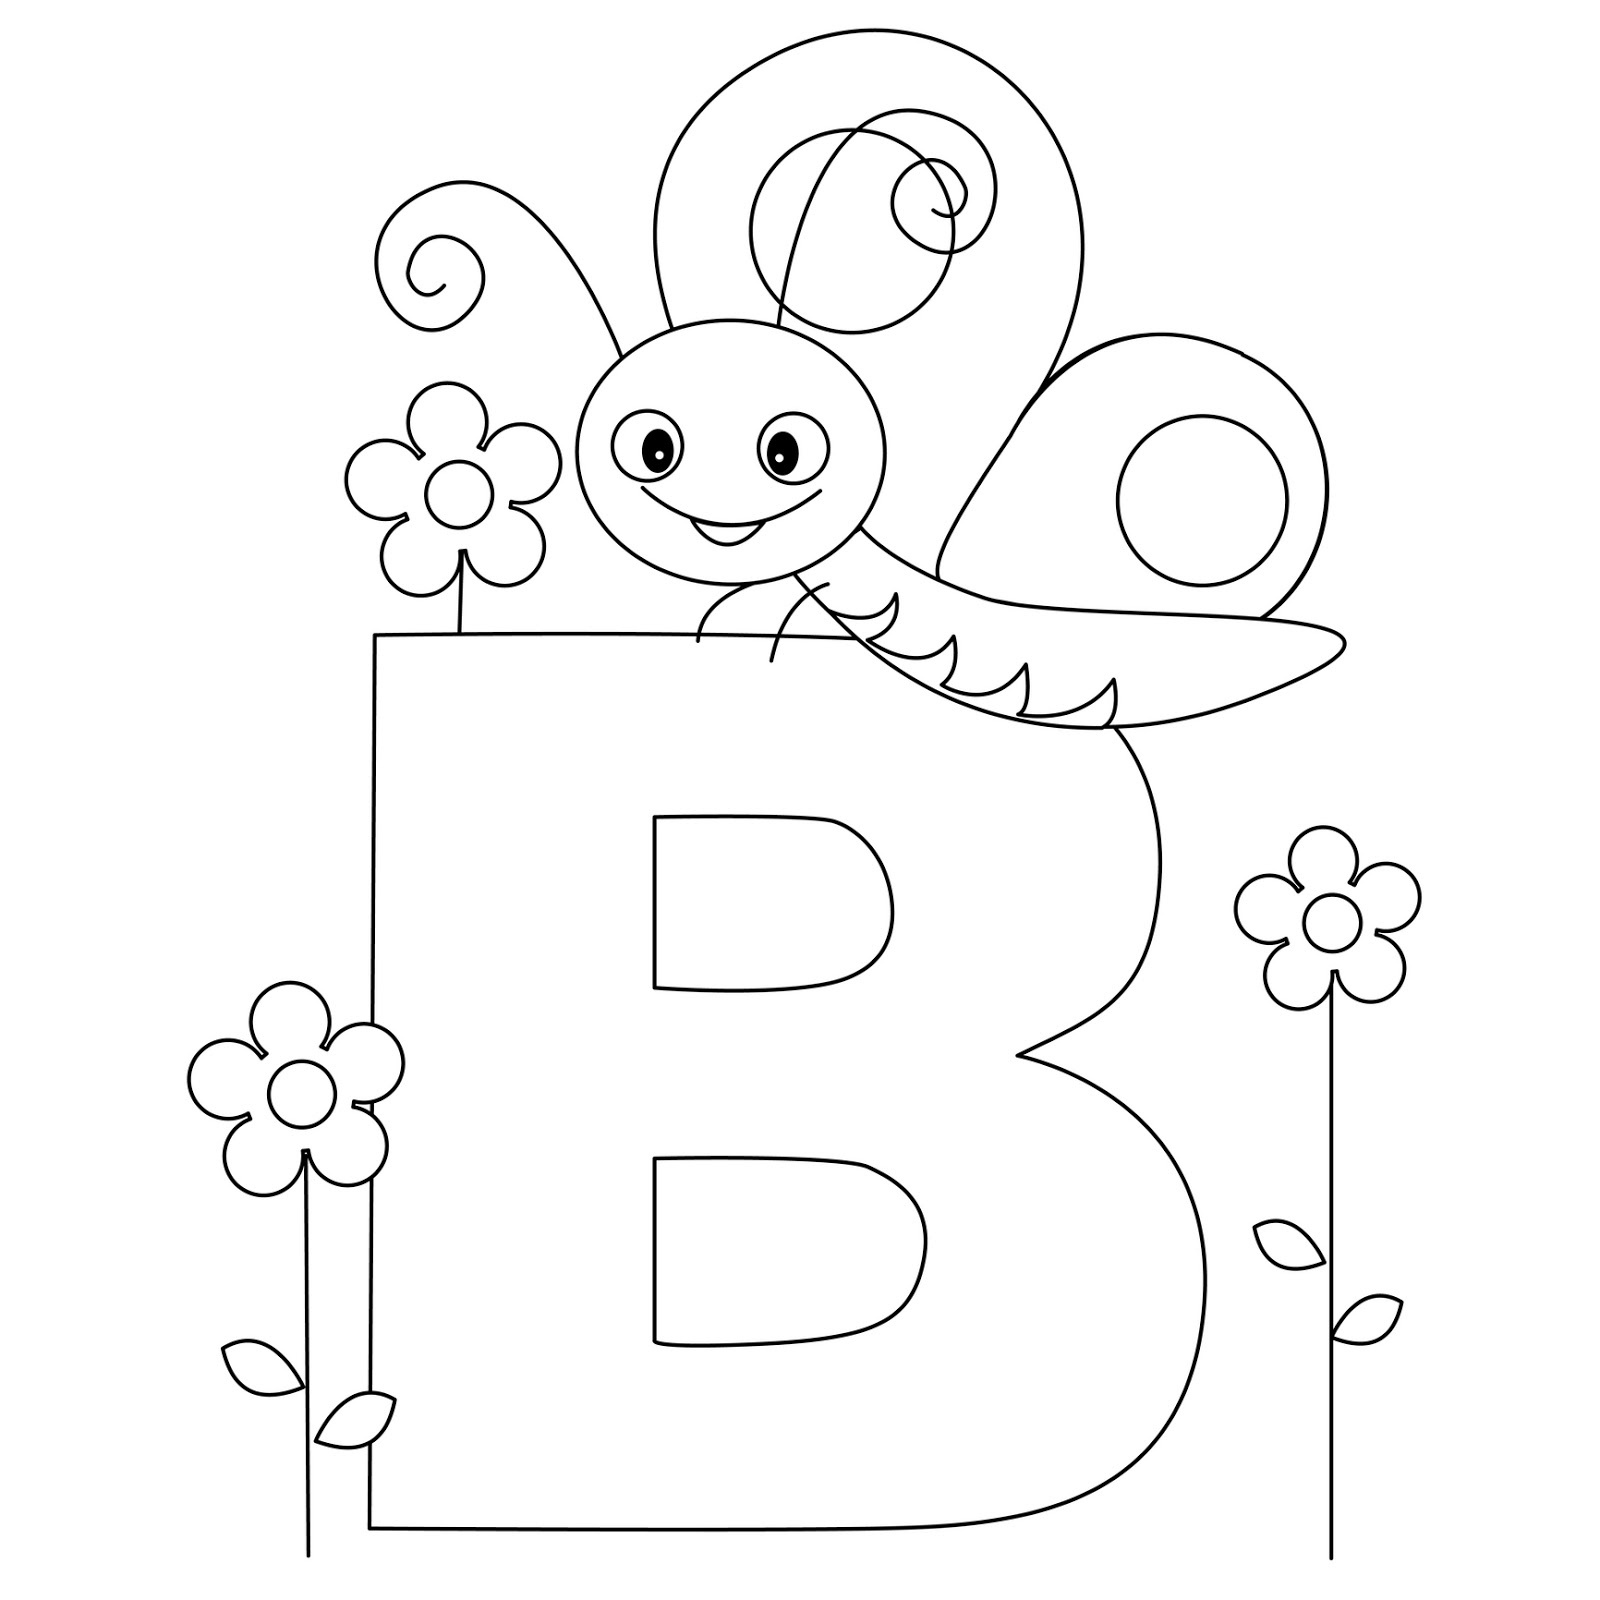 Coloring Pages For Abc - Gmvcontent - Free Alphabet Coloring Printables